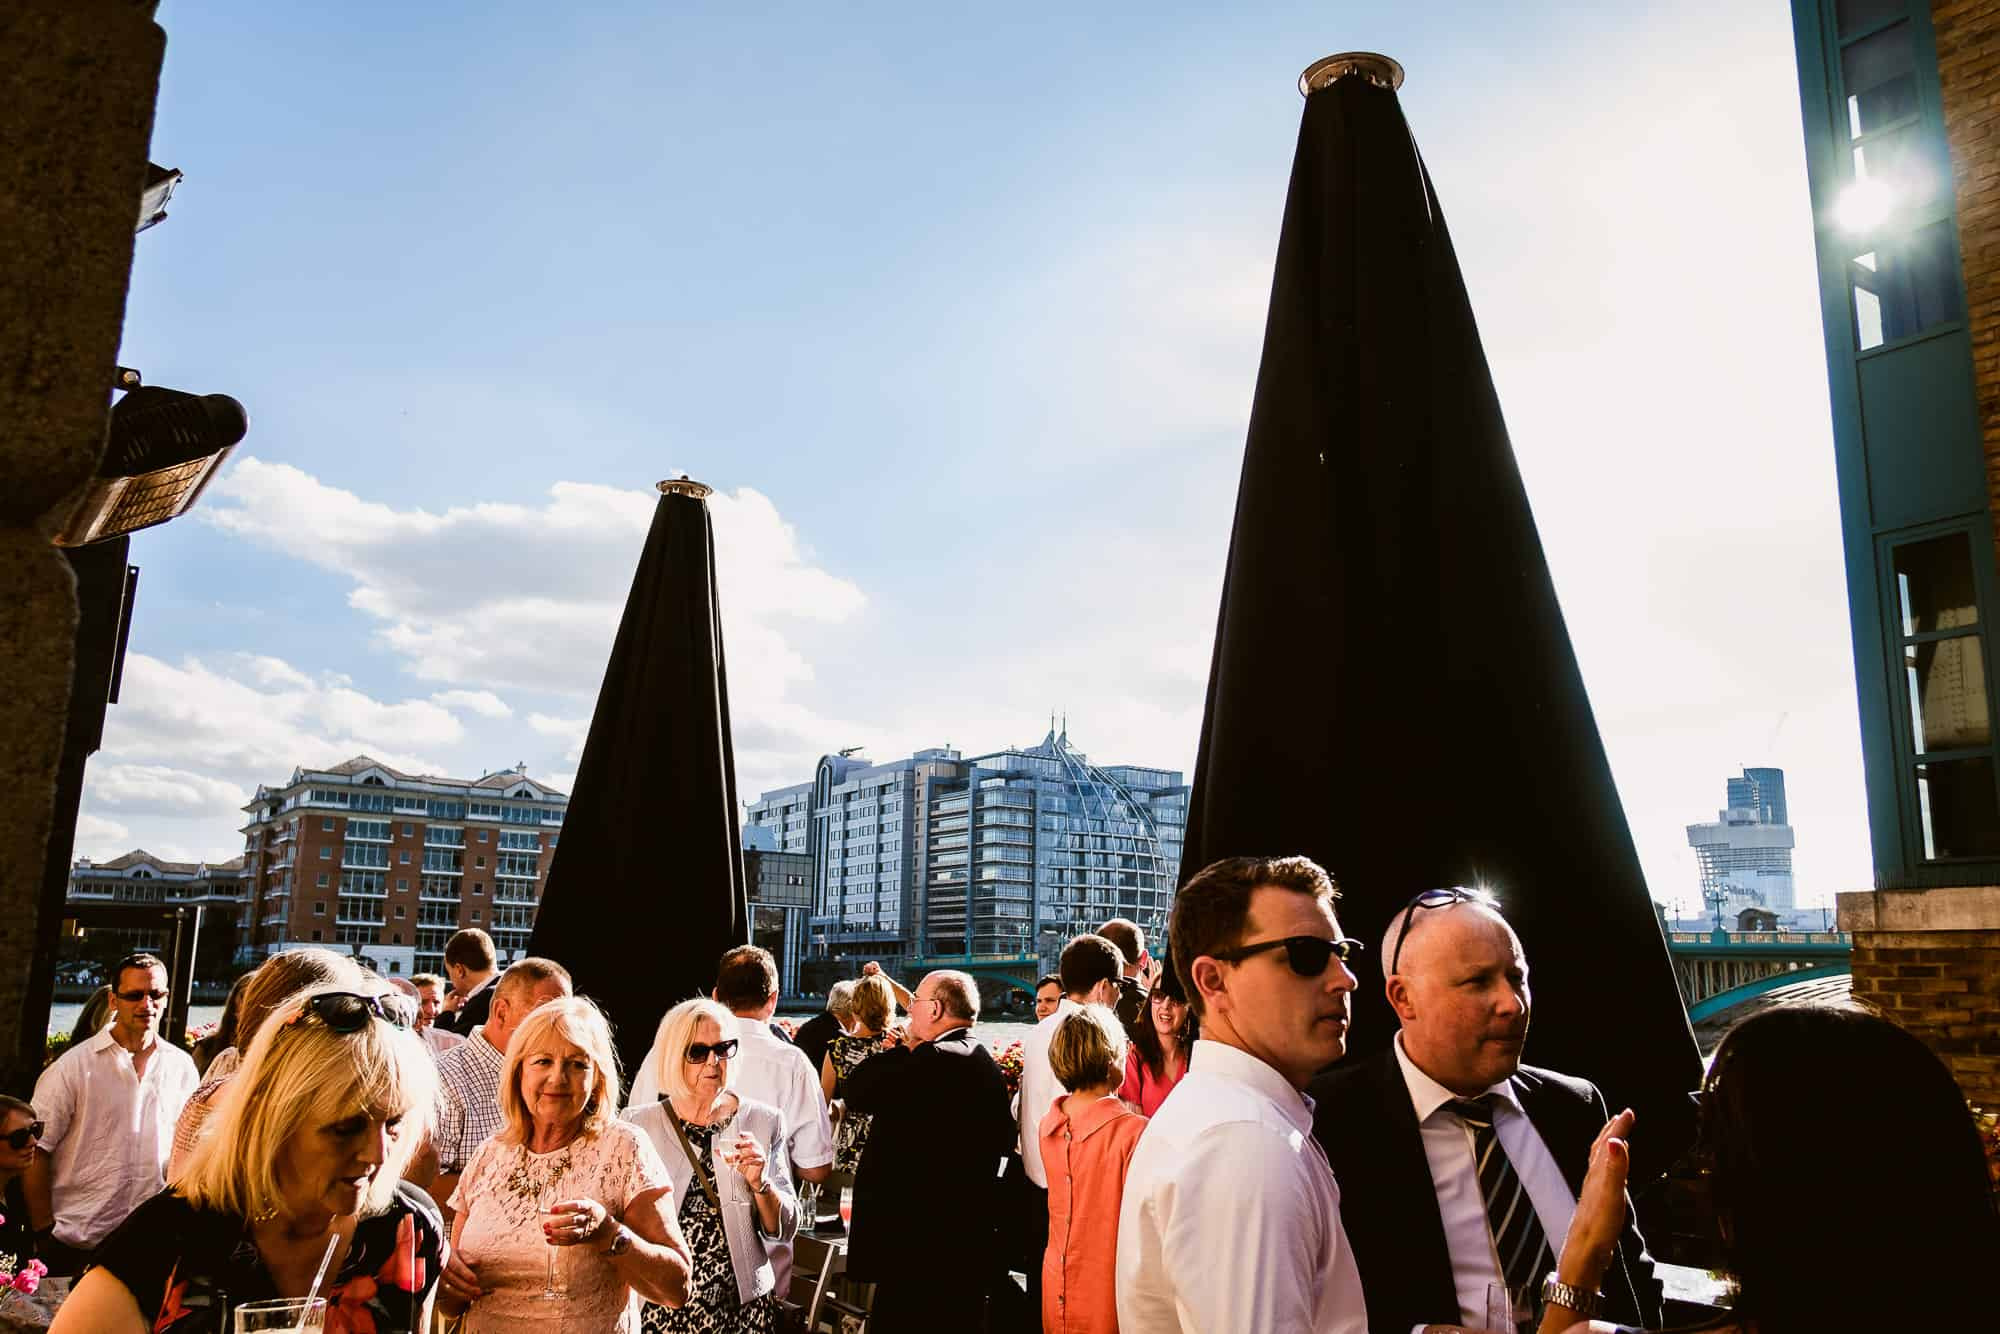 bethnal-green-town-hall-hotel-wedding-photography-0075